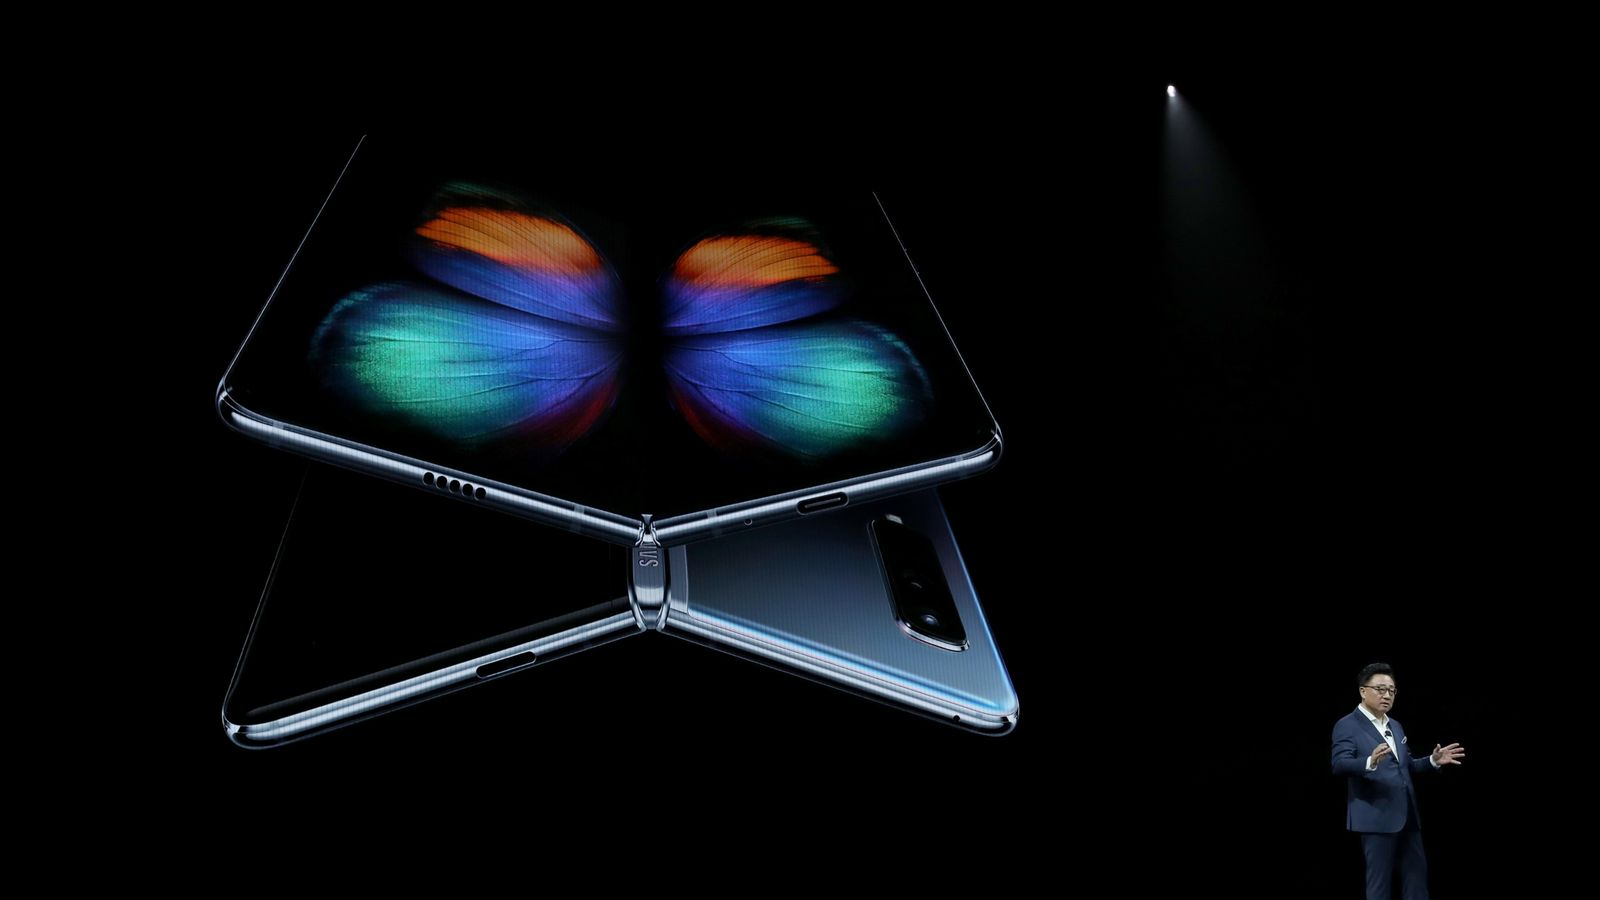 Foldable Samsung smartphones 'break' after just two days